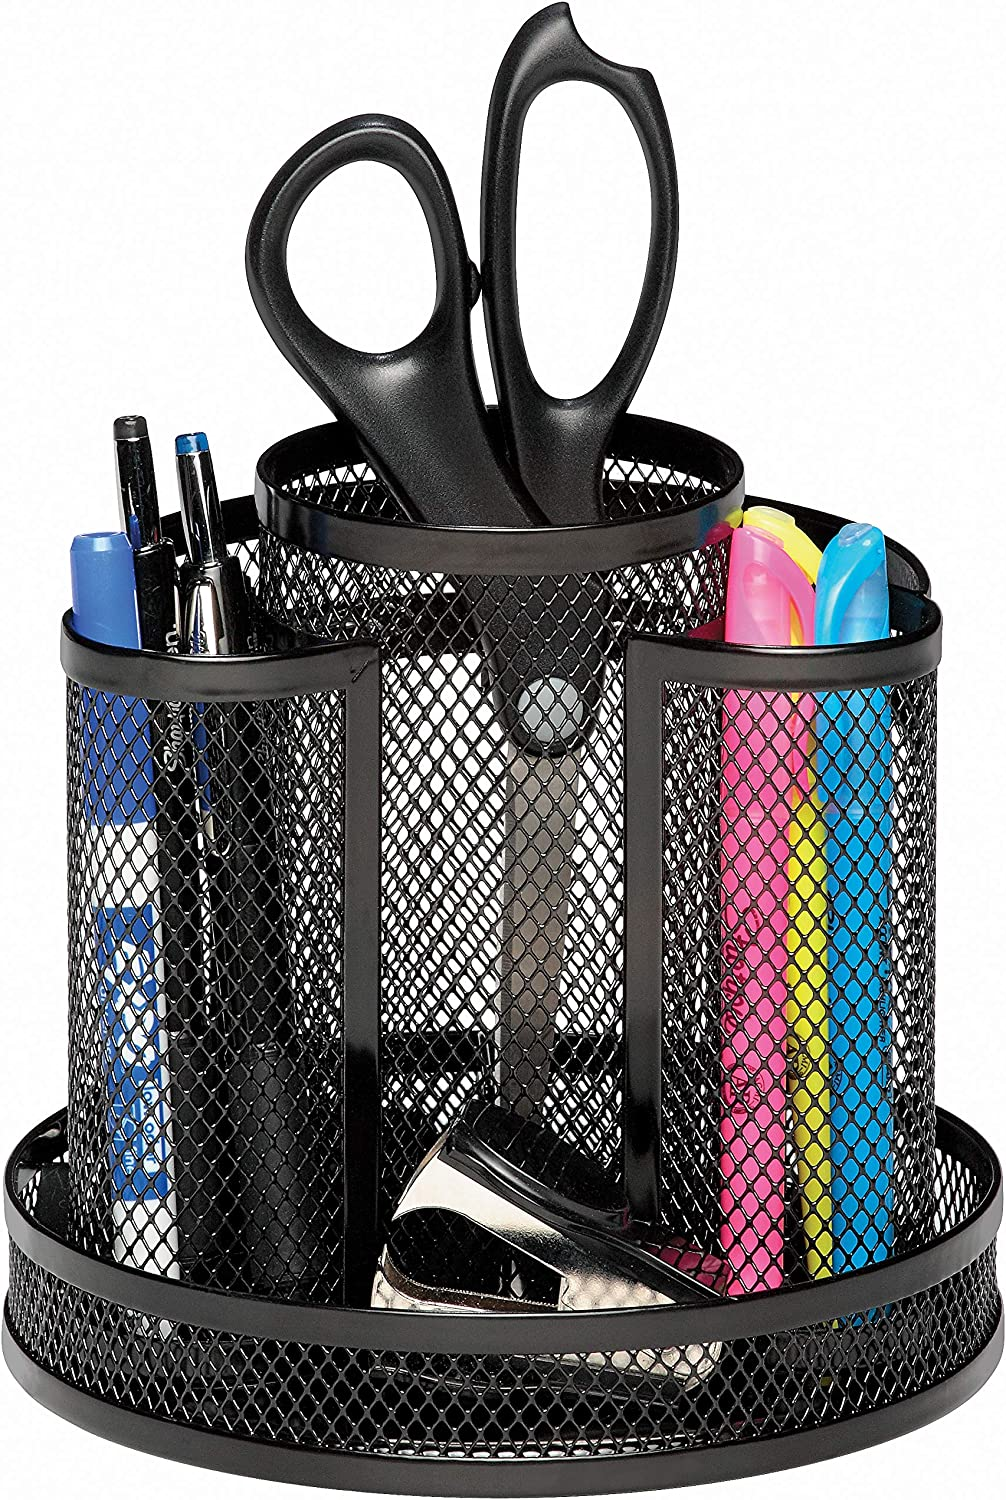 Rolodex Mesh Collection Spinning Desk Sorter, Black (1773083) : Pencil Holders : Office Products